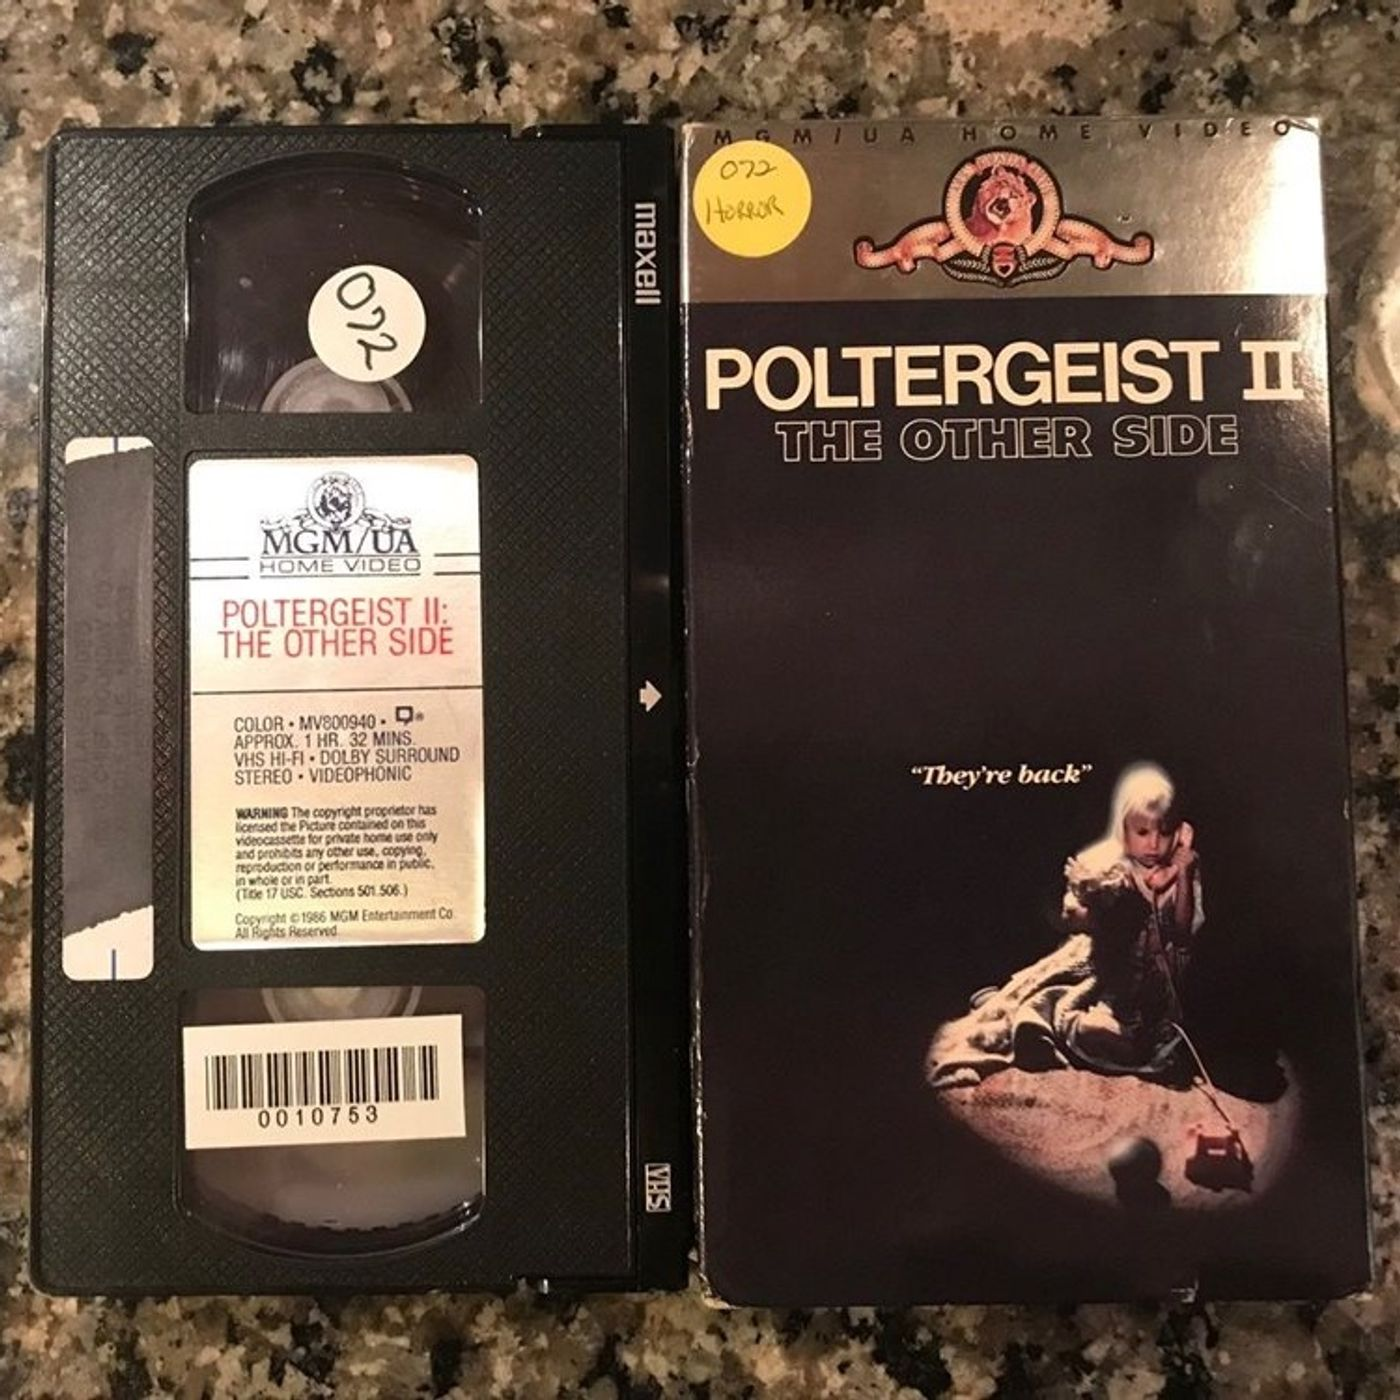 1986 - Poltergeist II: The Other Side